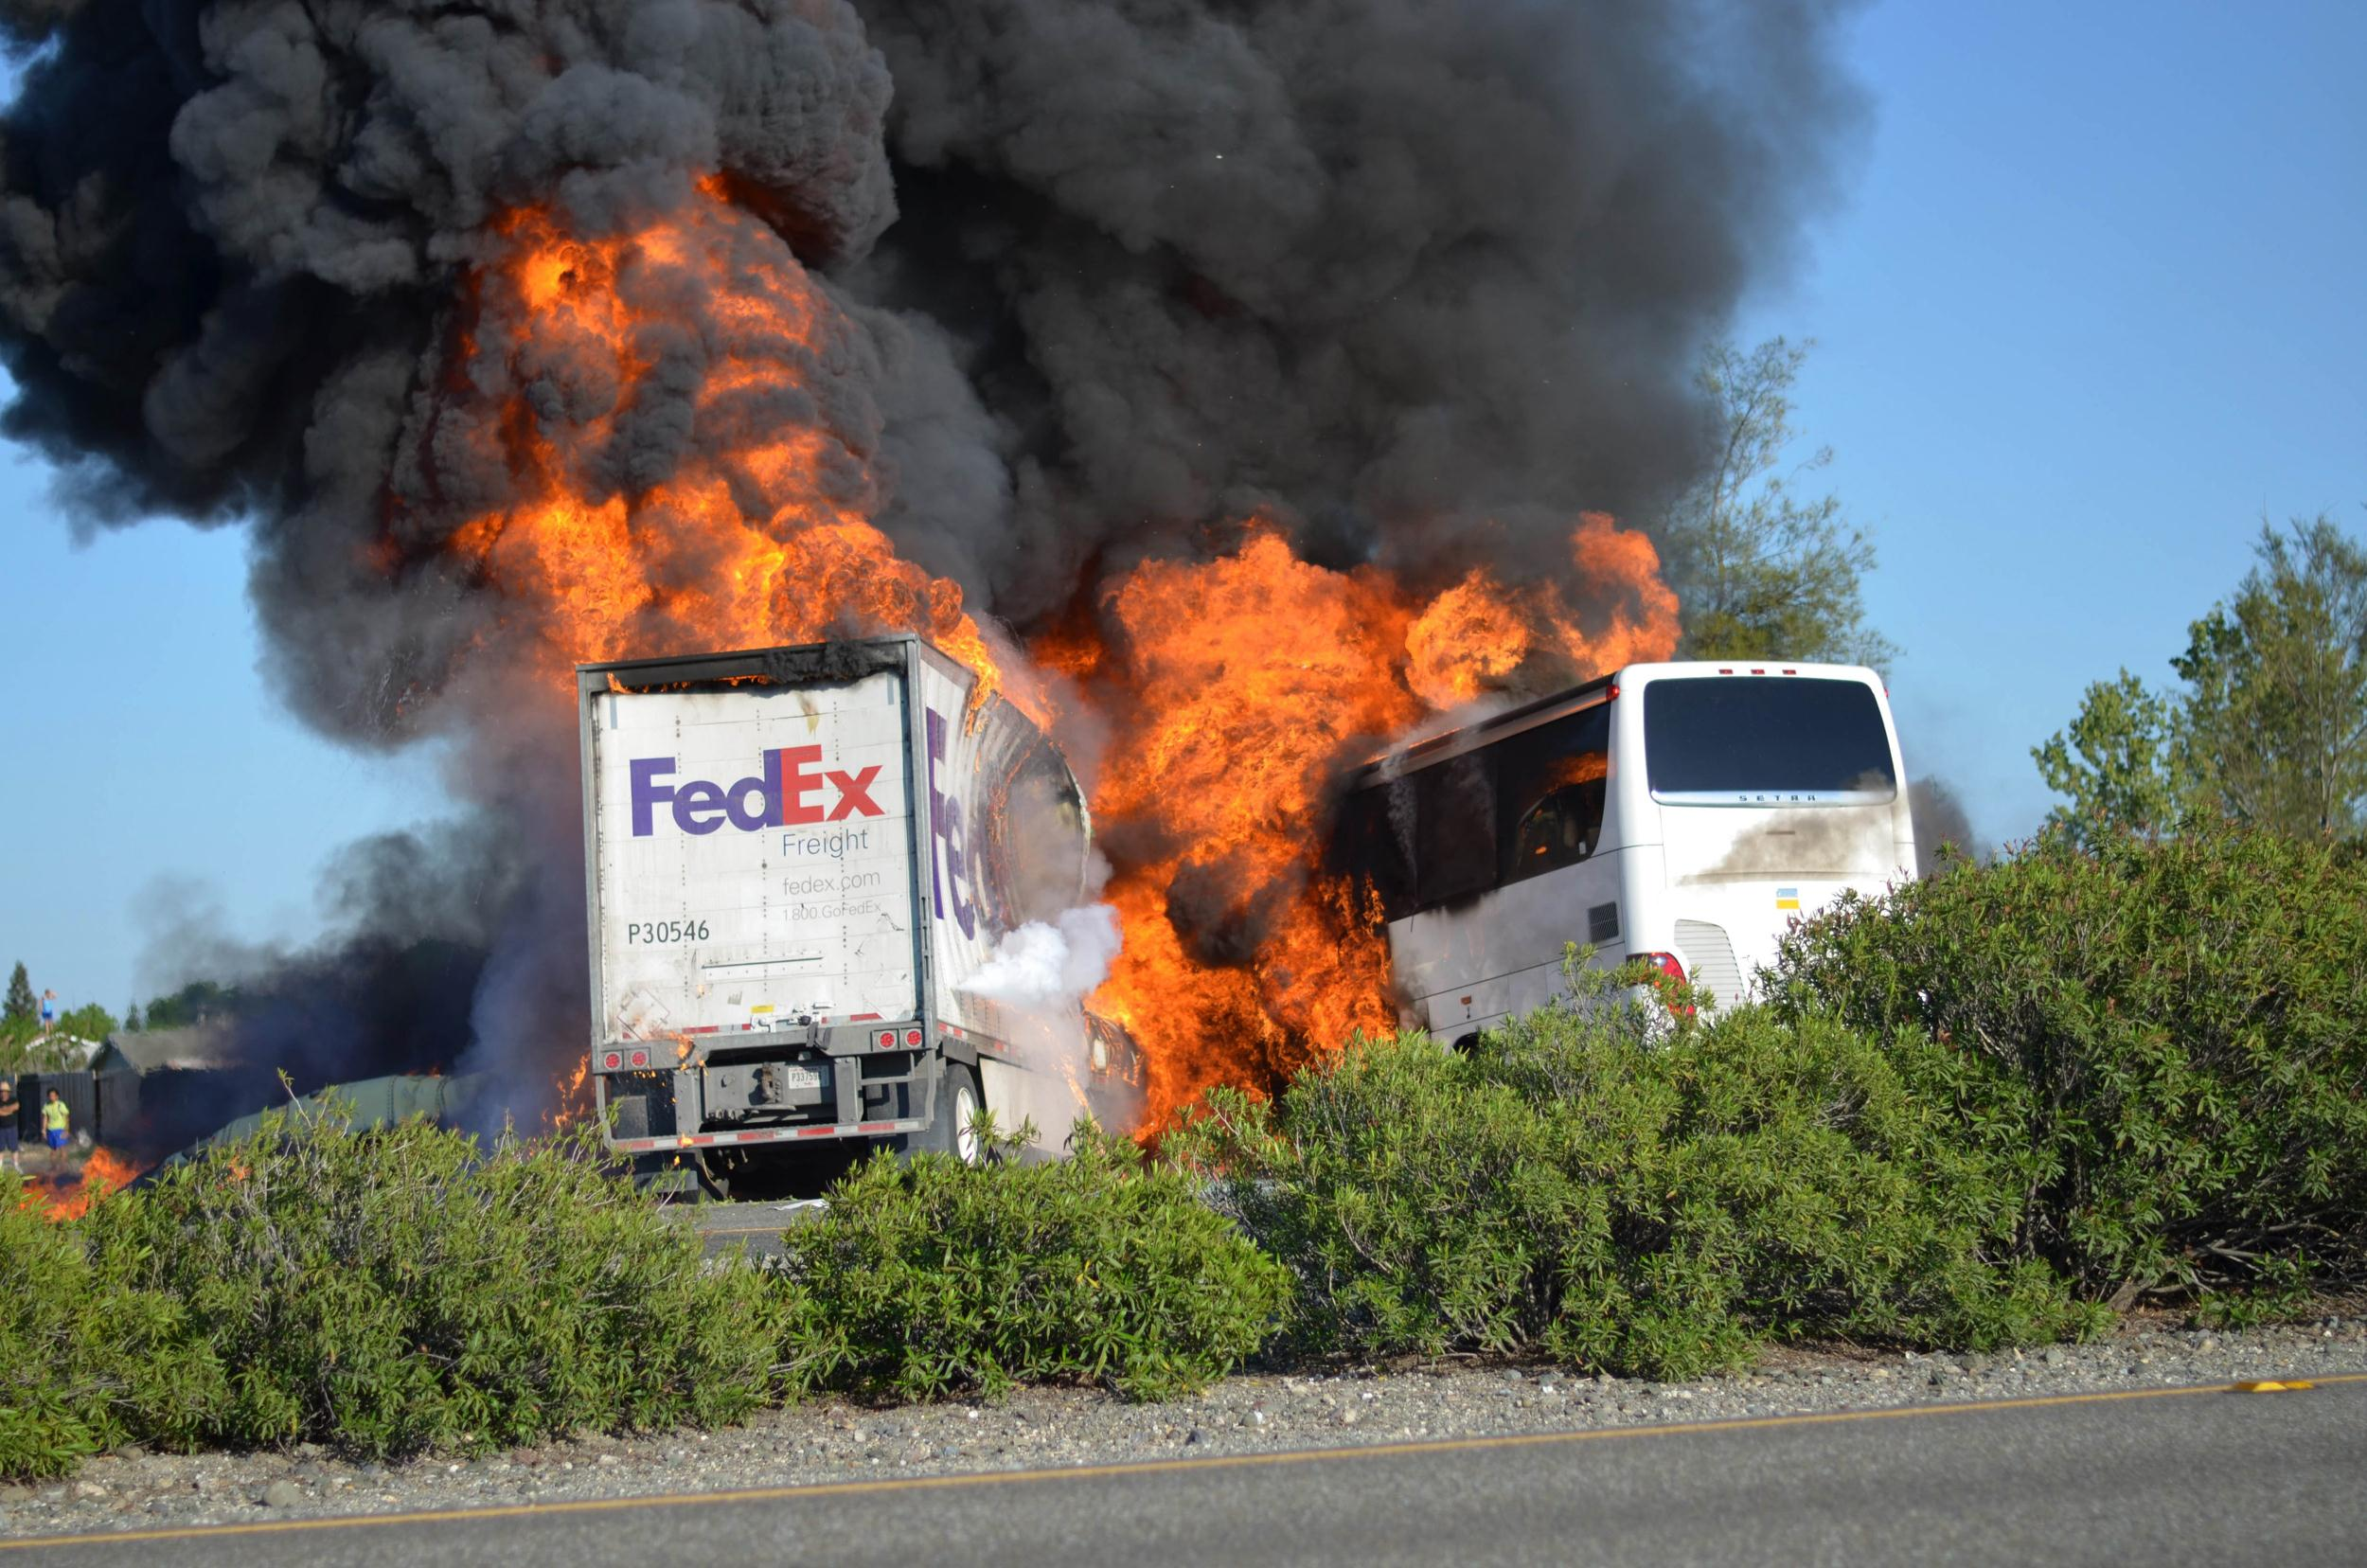 Image: Massive flames are seen devouring both vehicles just after a crash involving a FedEx tractor-trailer and a bus